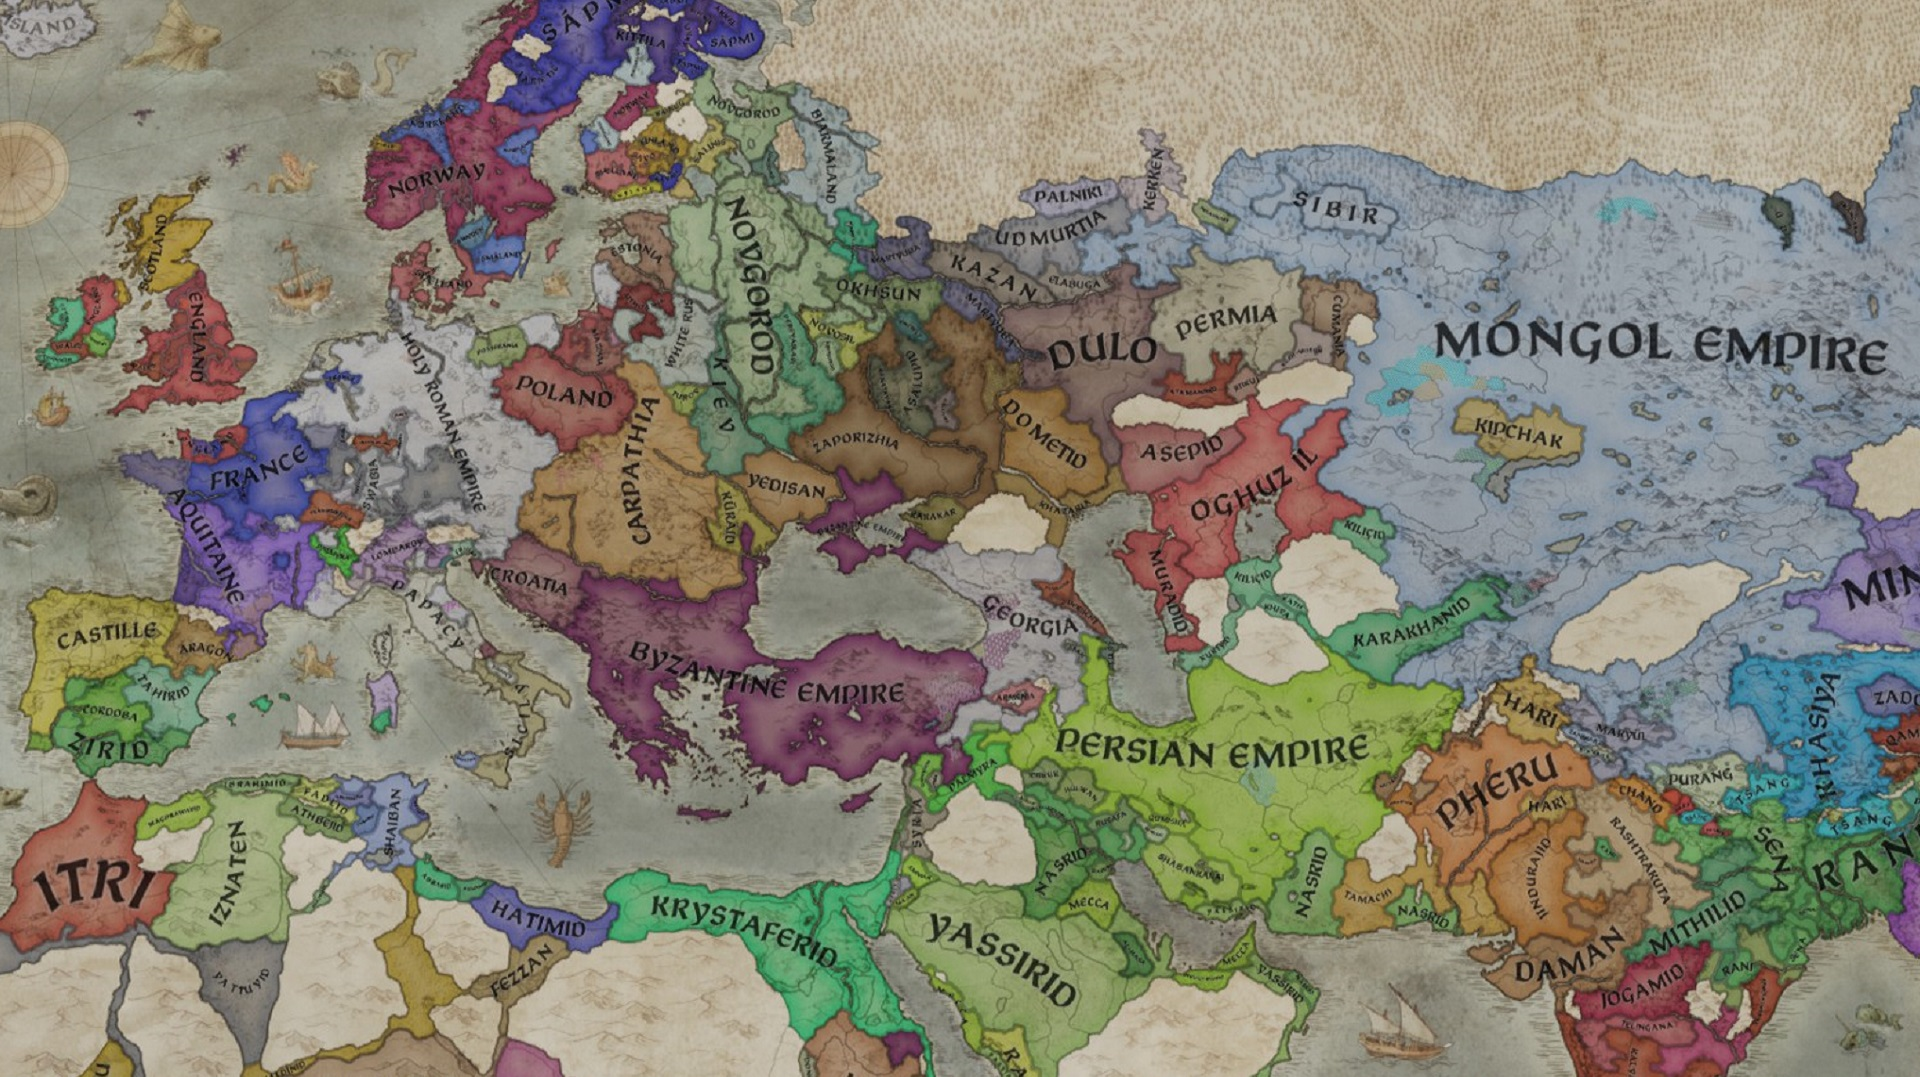 Crusader Kings 3 patch 1.4 'Azure' improves for warfare, traits, and interactions